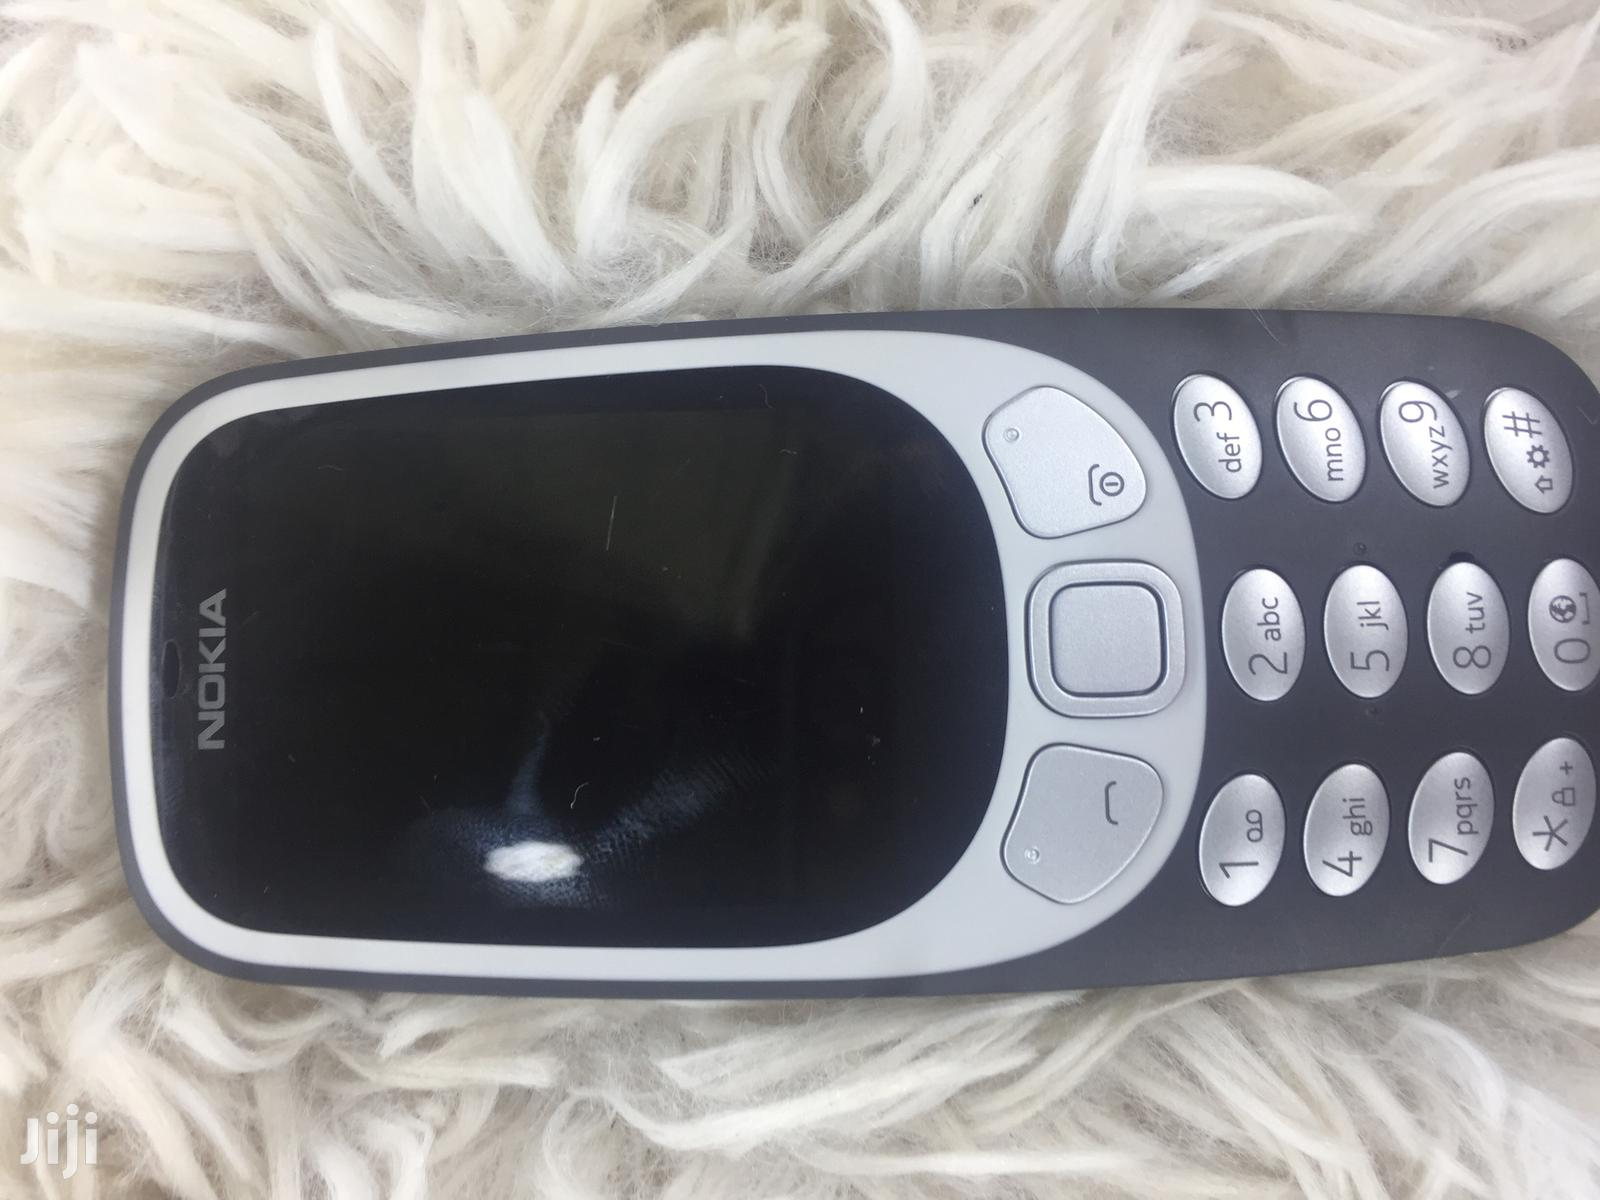 Archive: New Nokia 3310 Black